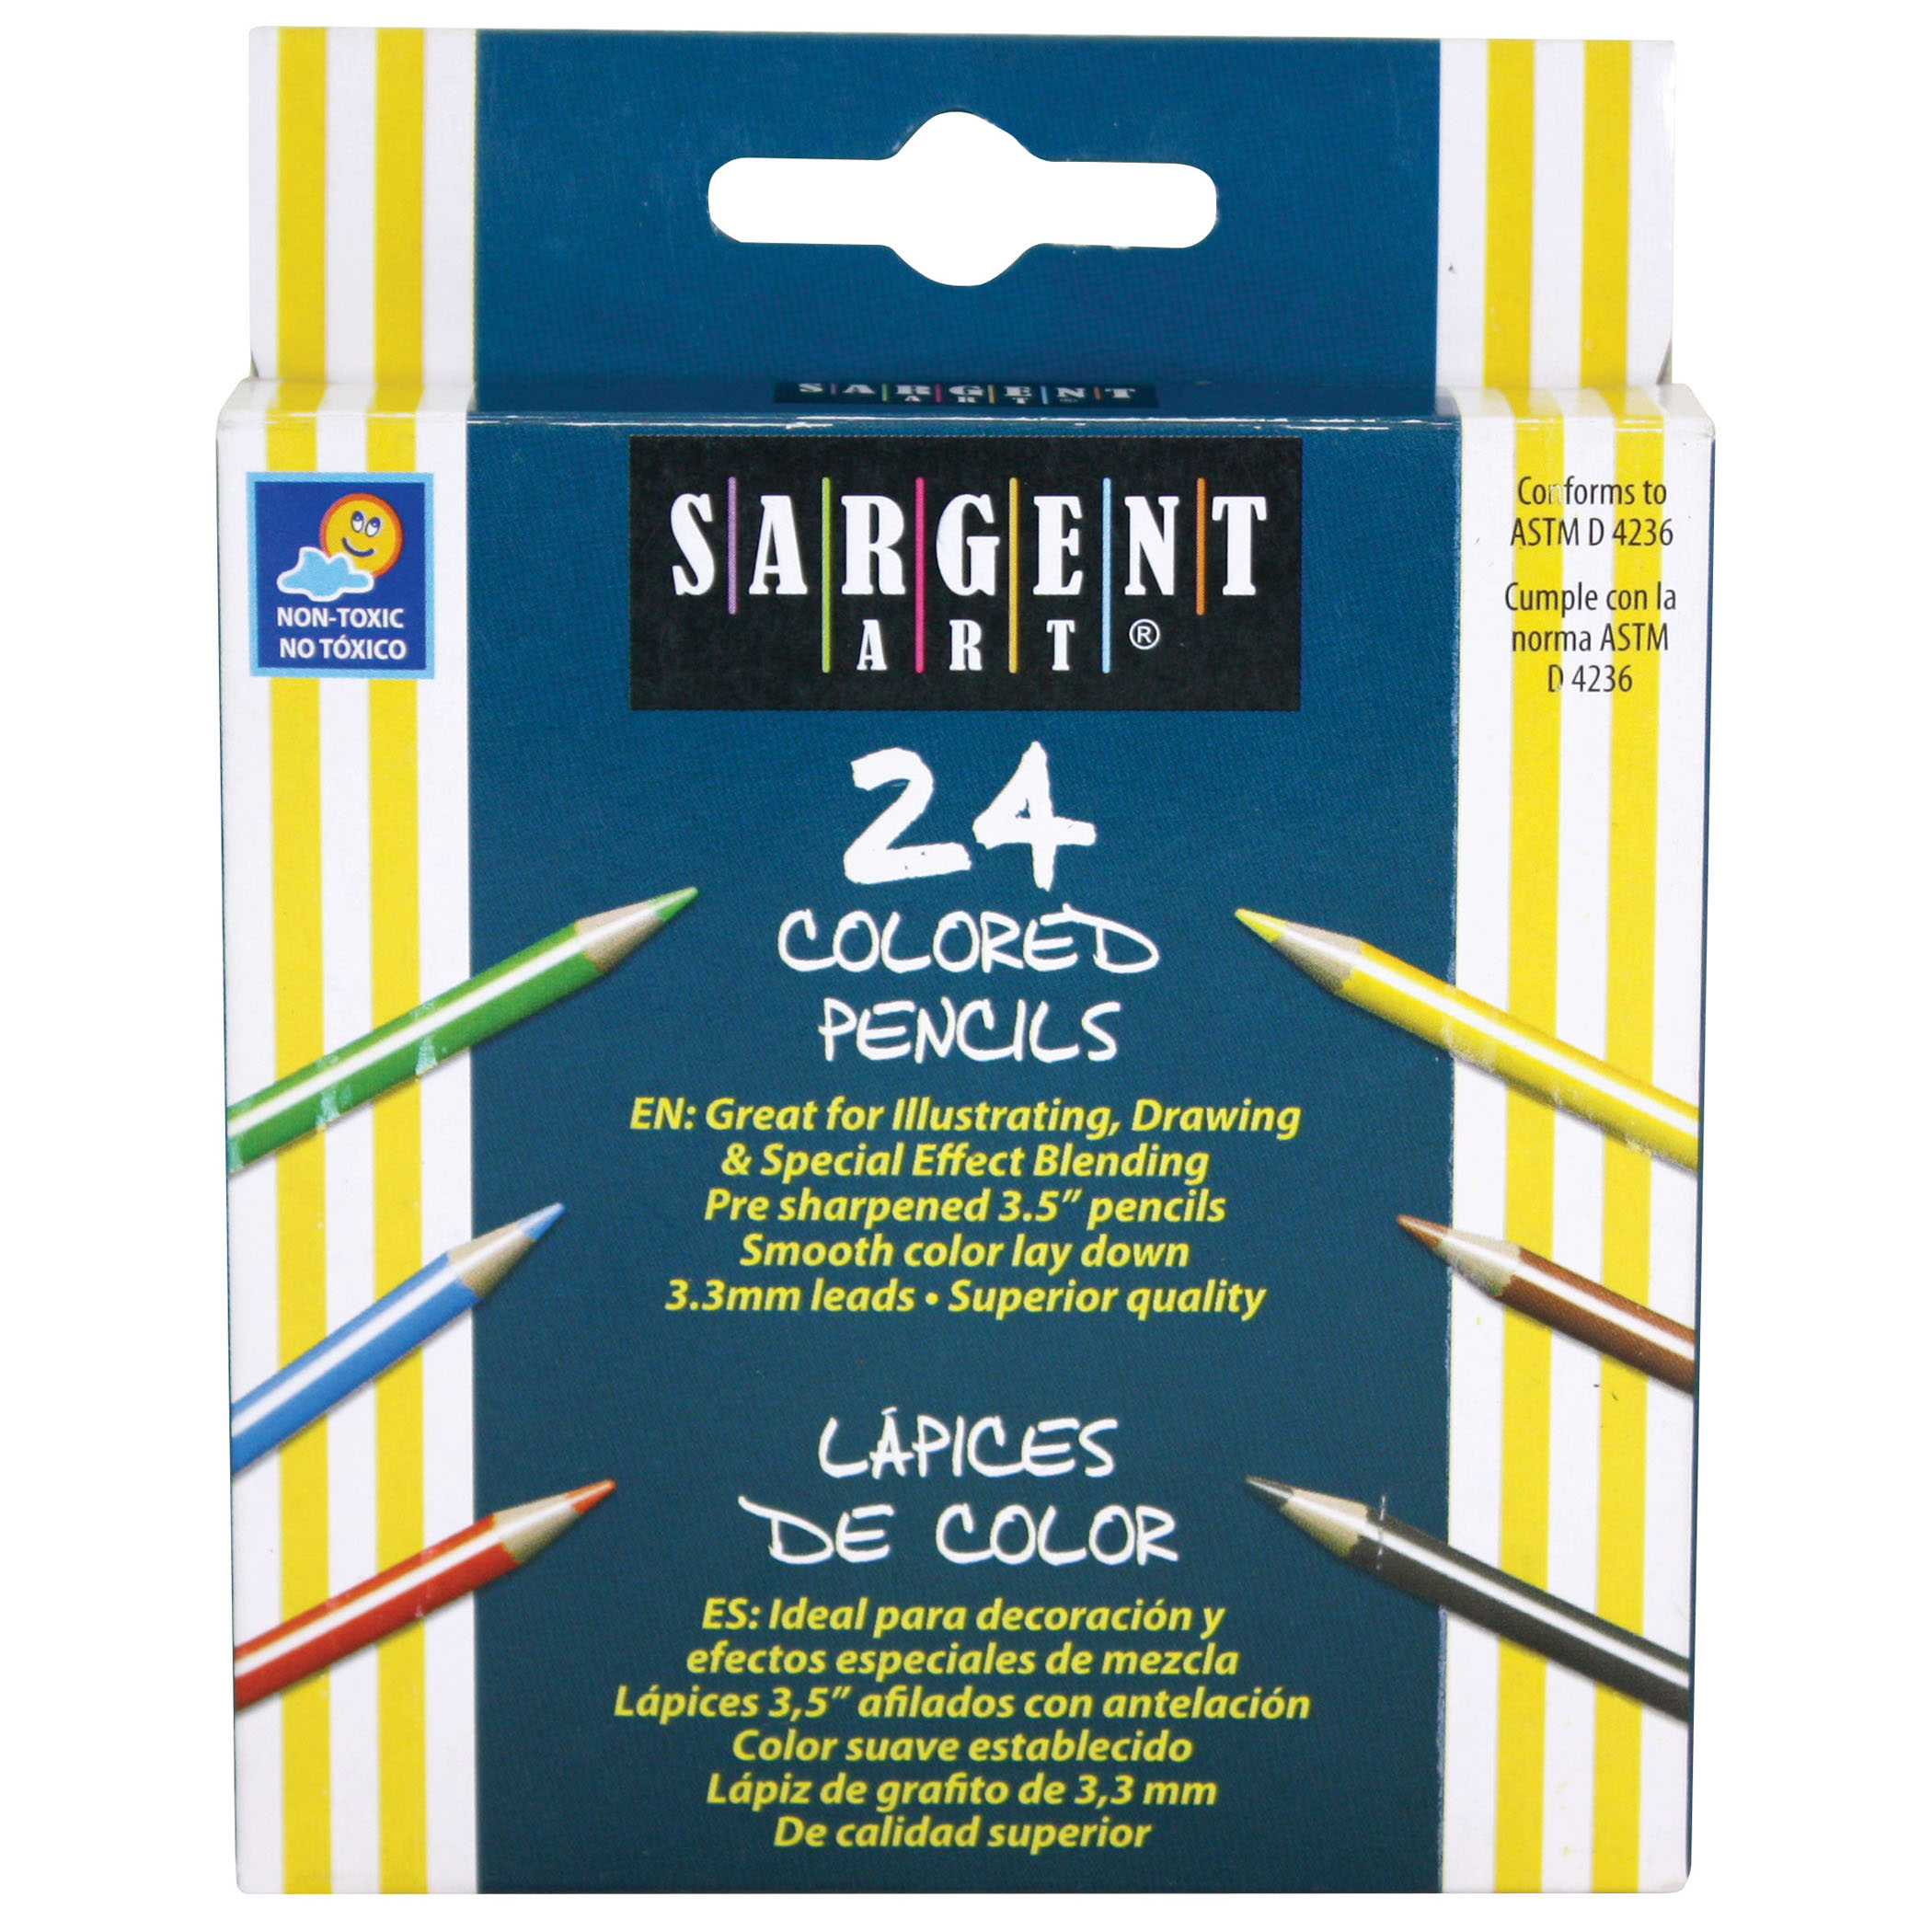 Sargent Art® Half Size Colored Pencils, 24 per pack, 12 packs